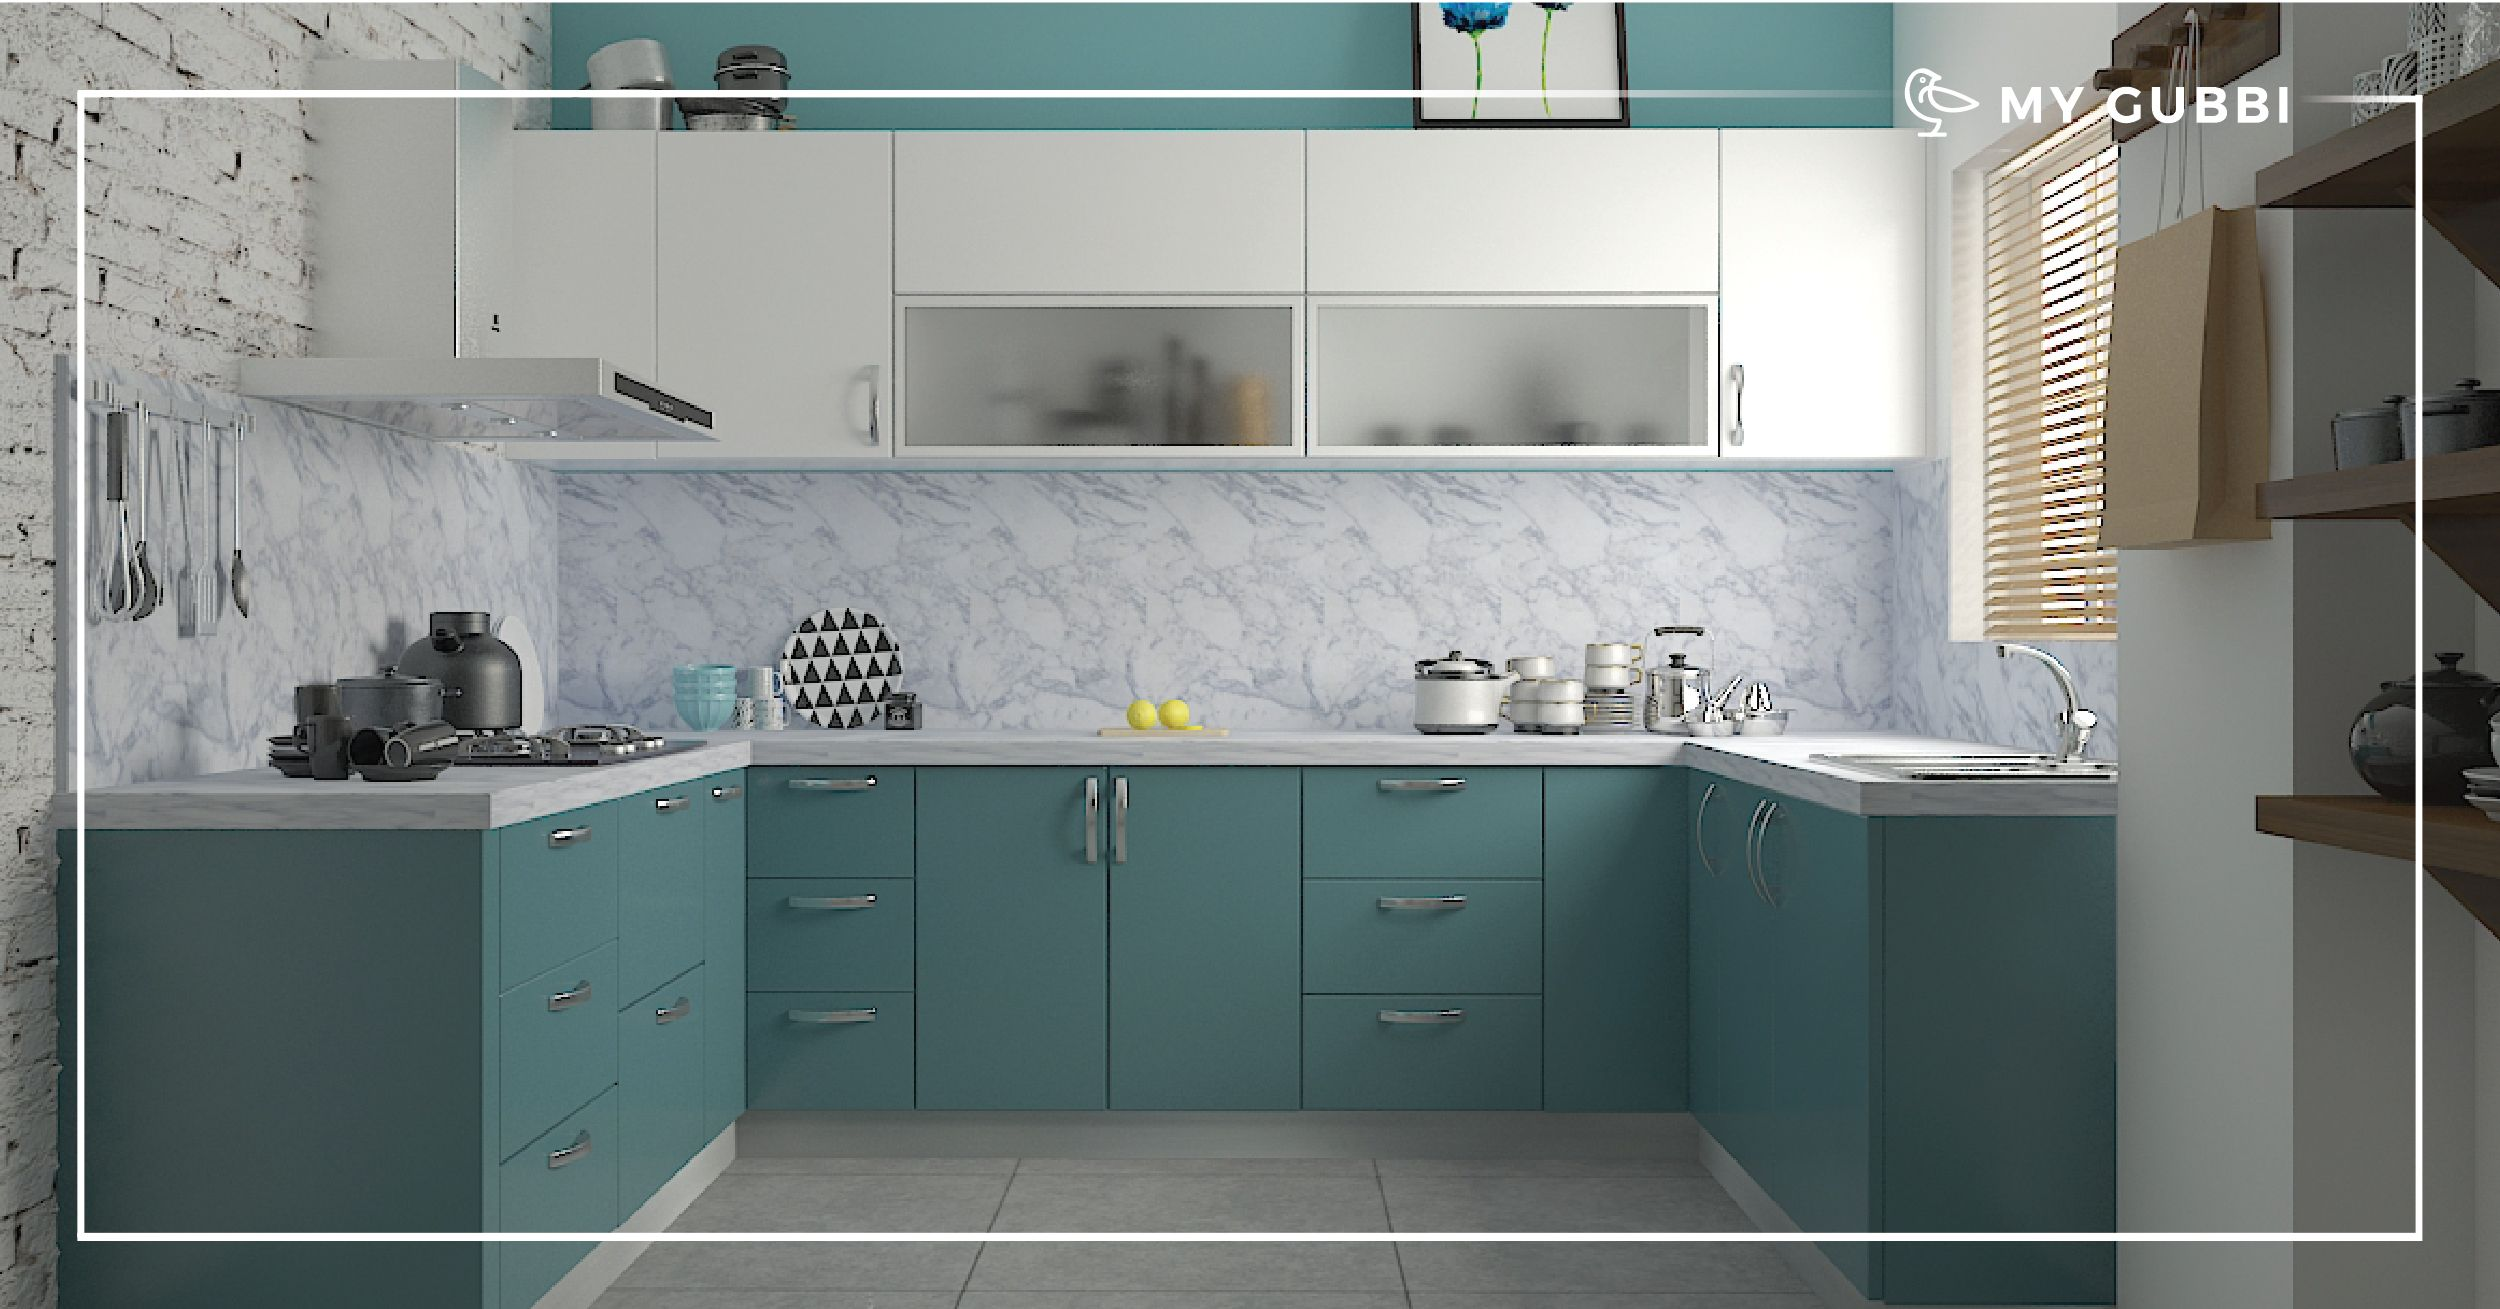 Kitchens Done The Way You Imagined For Home Interiors That Match